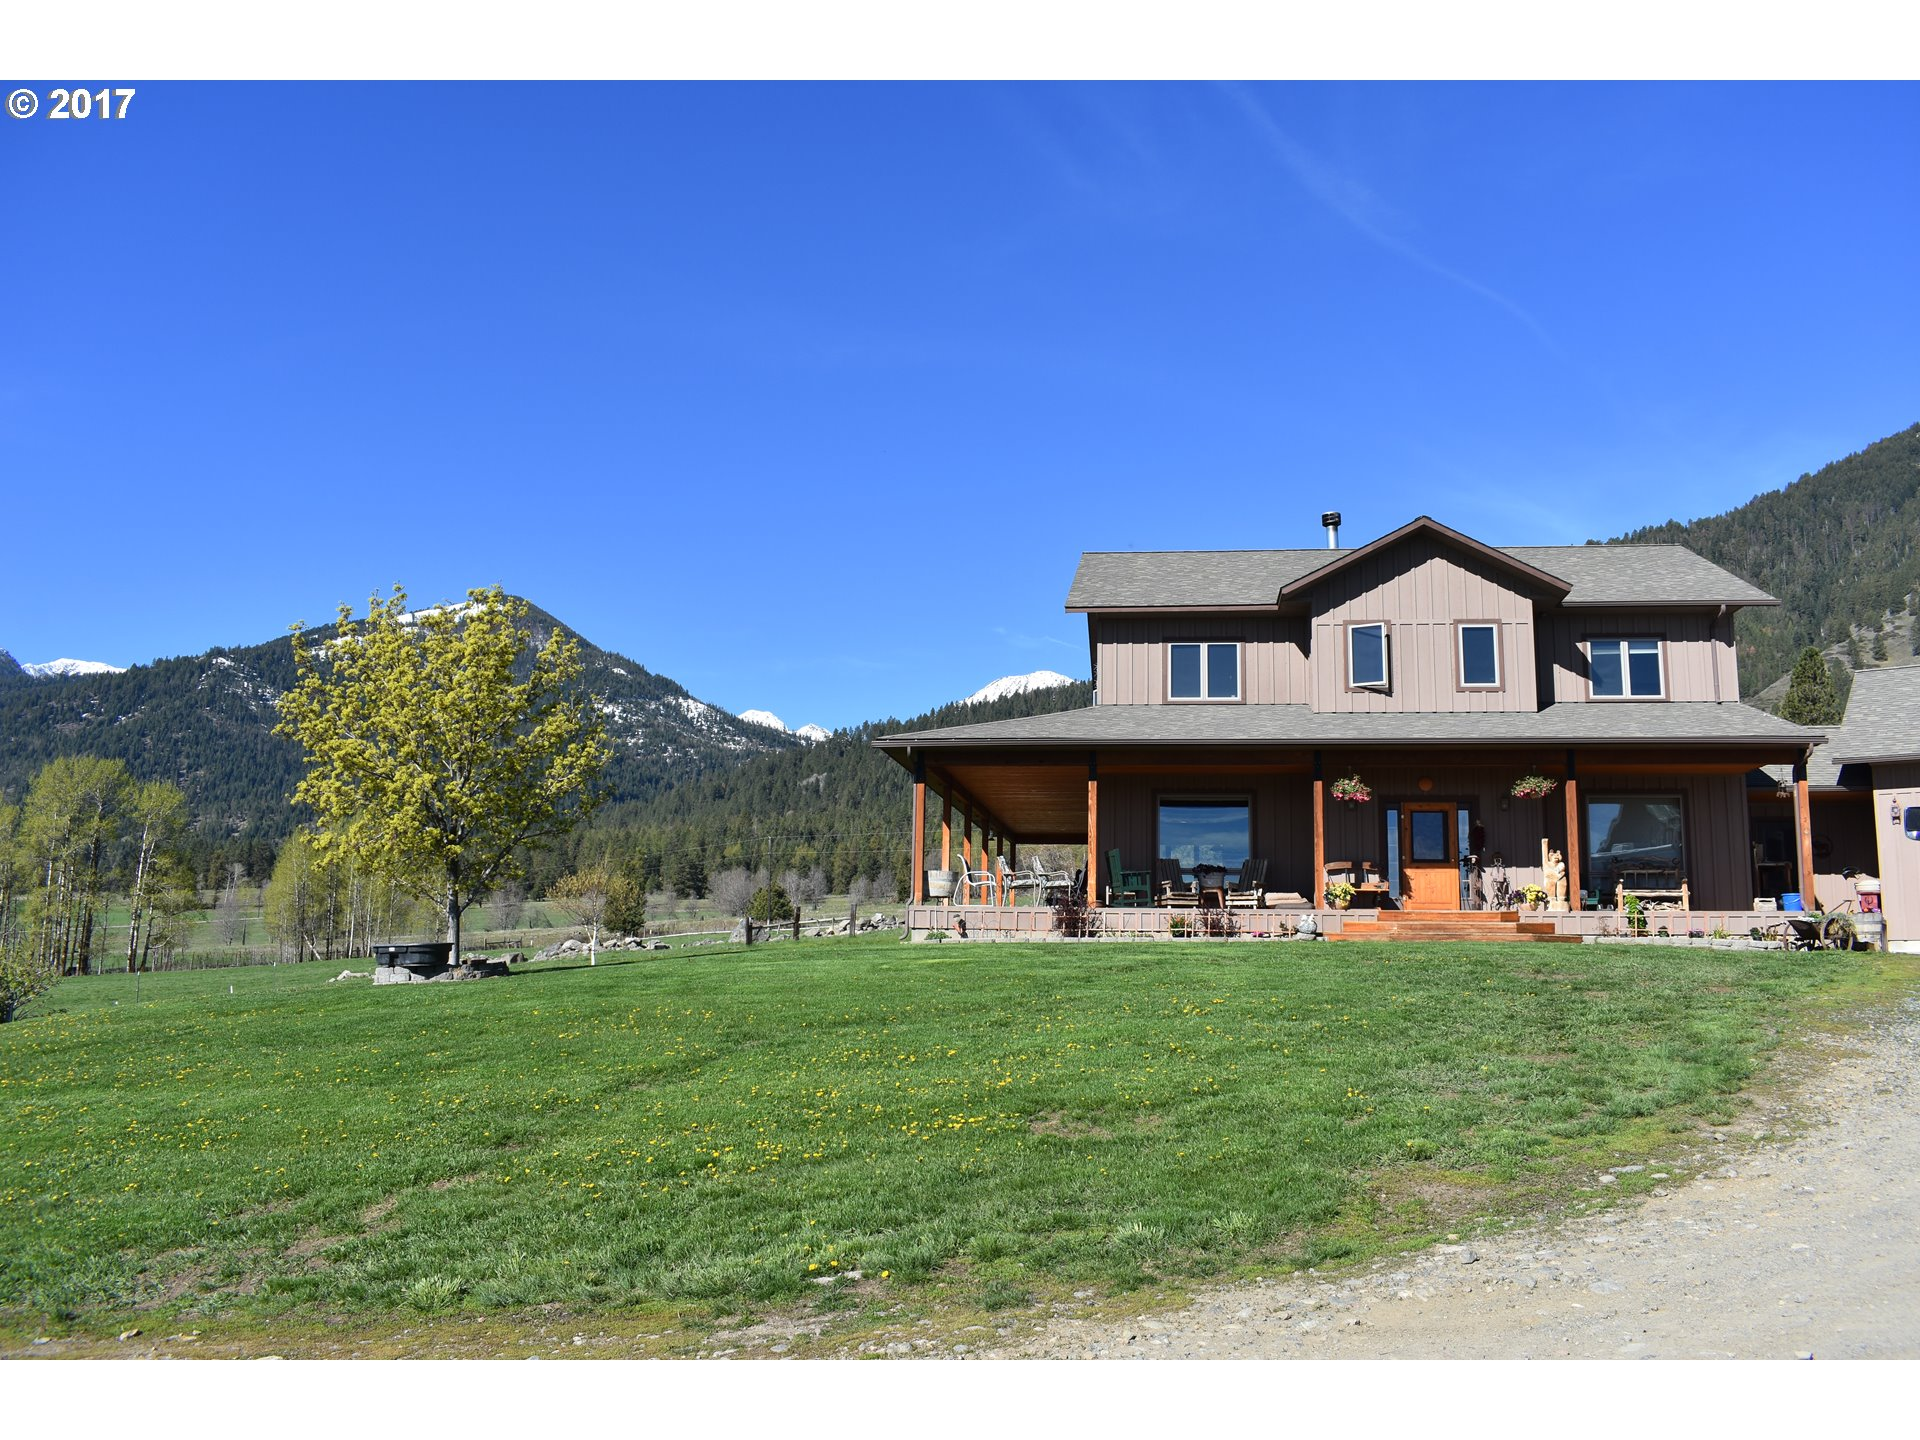 13619 HUNT MTN LN, Baker City, OR 97814